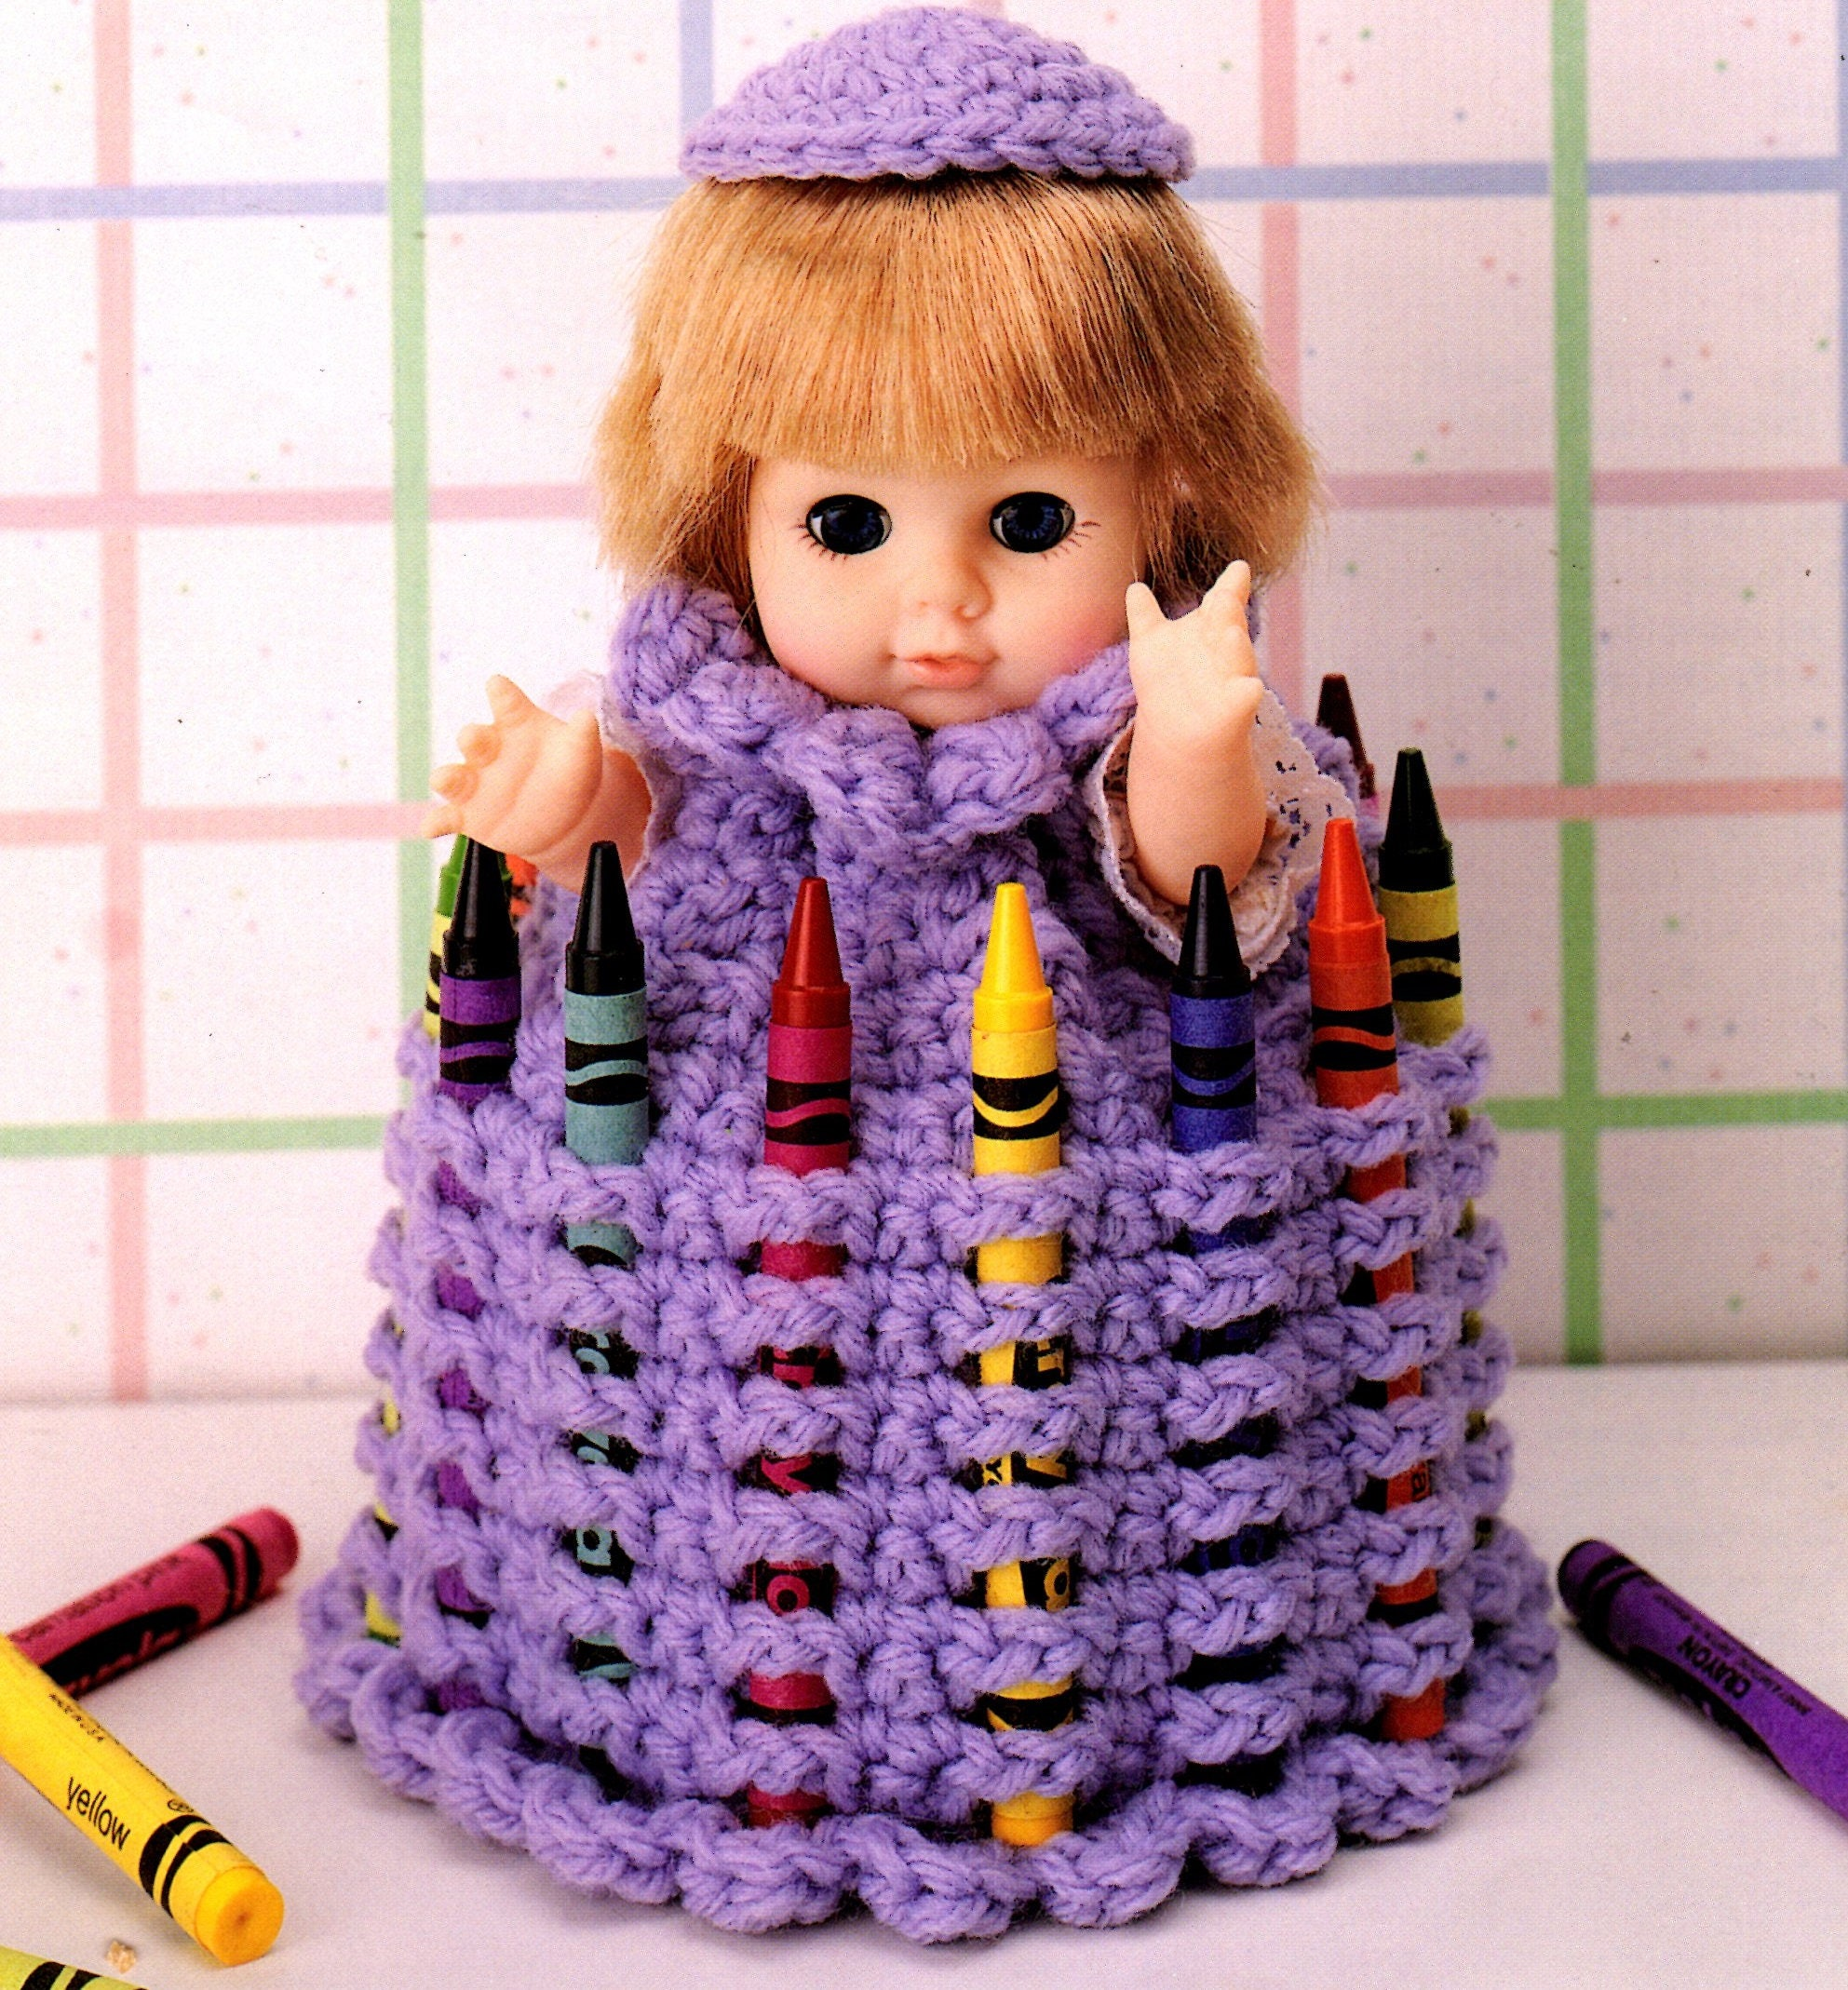 Vintage Crochet Pattern Doll Dress Crayon Keeper For 8 Inch Etsy